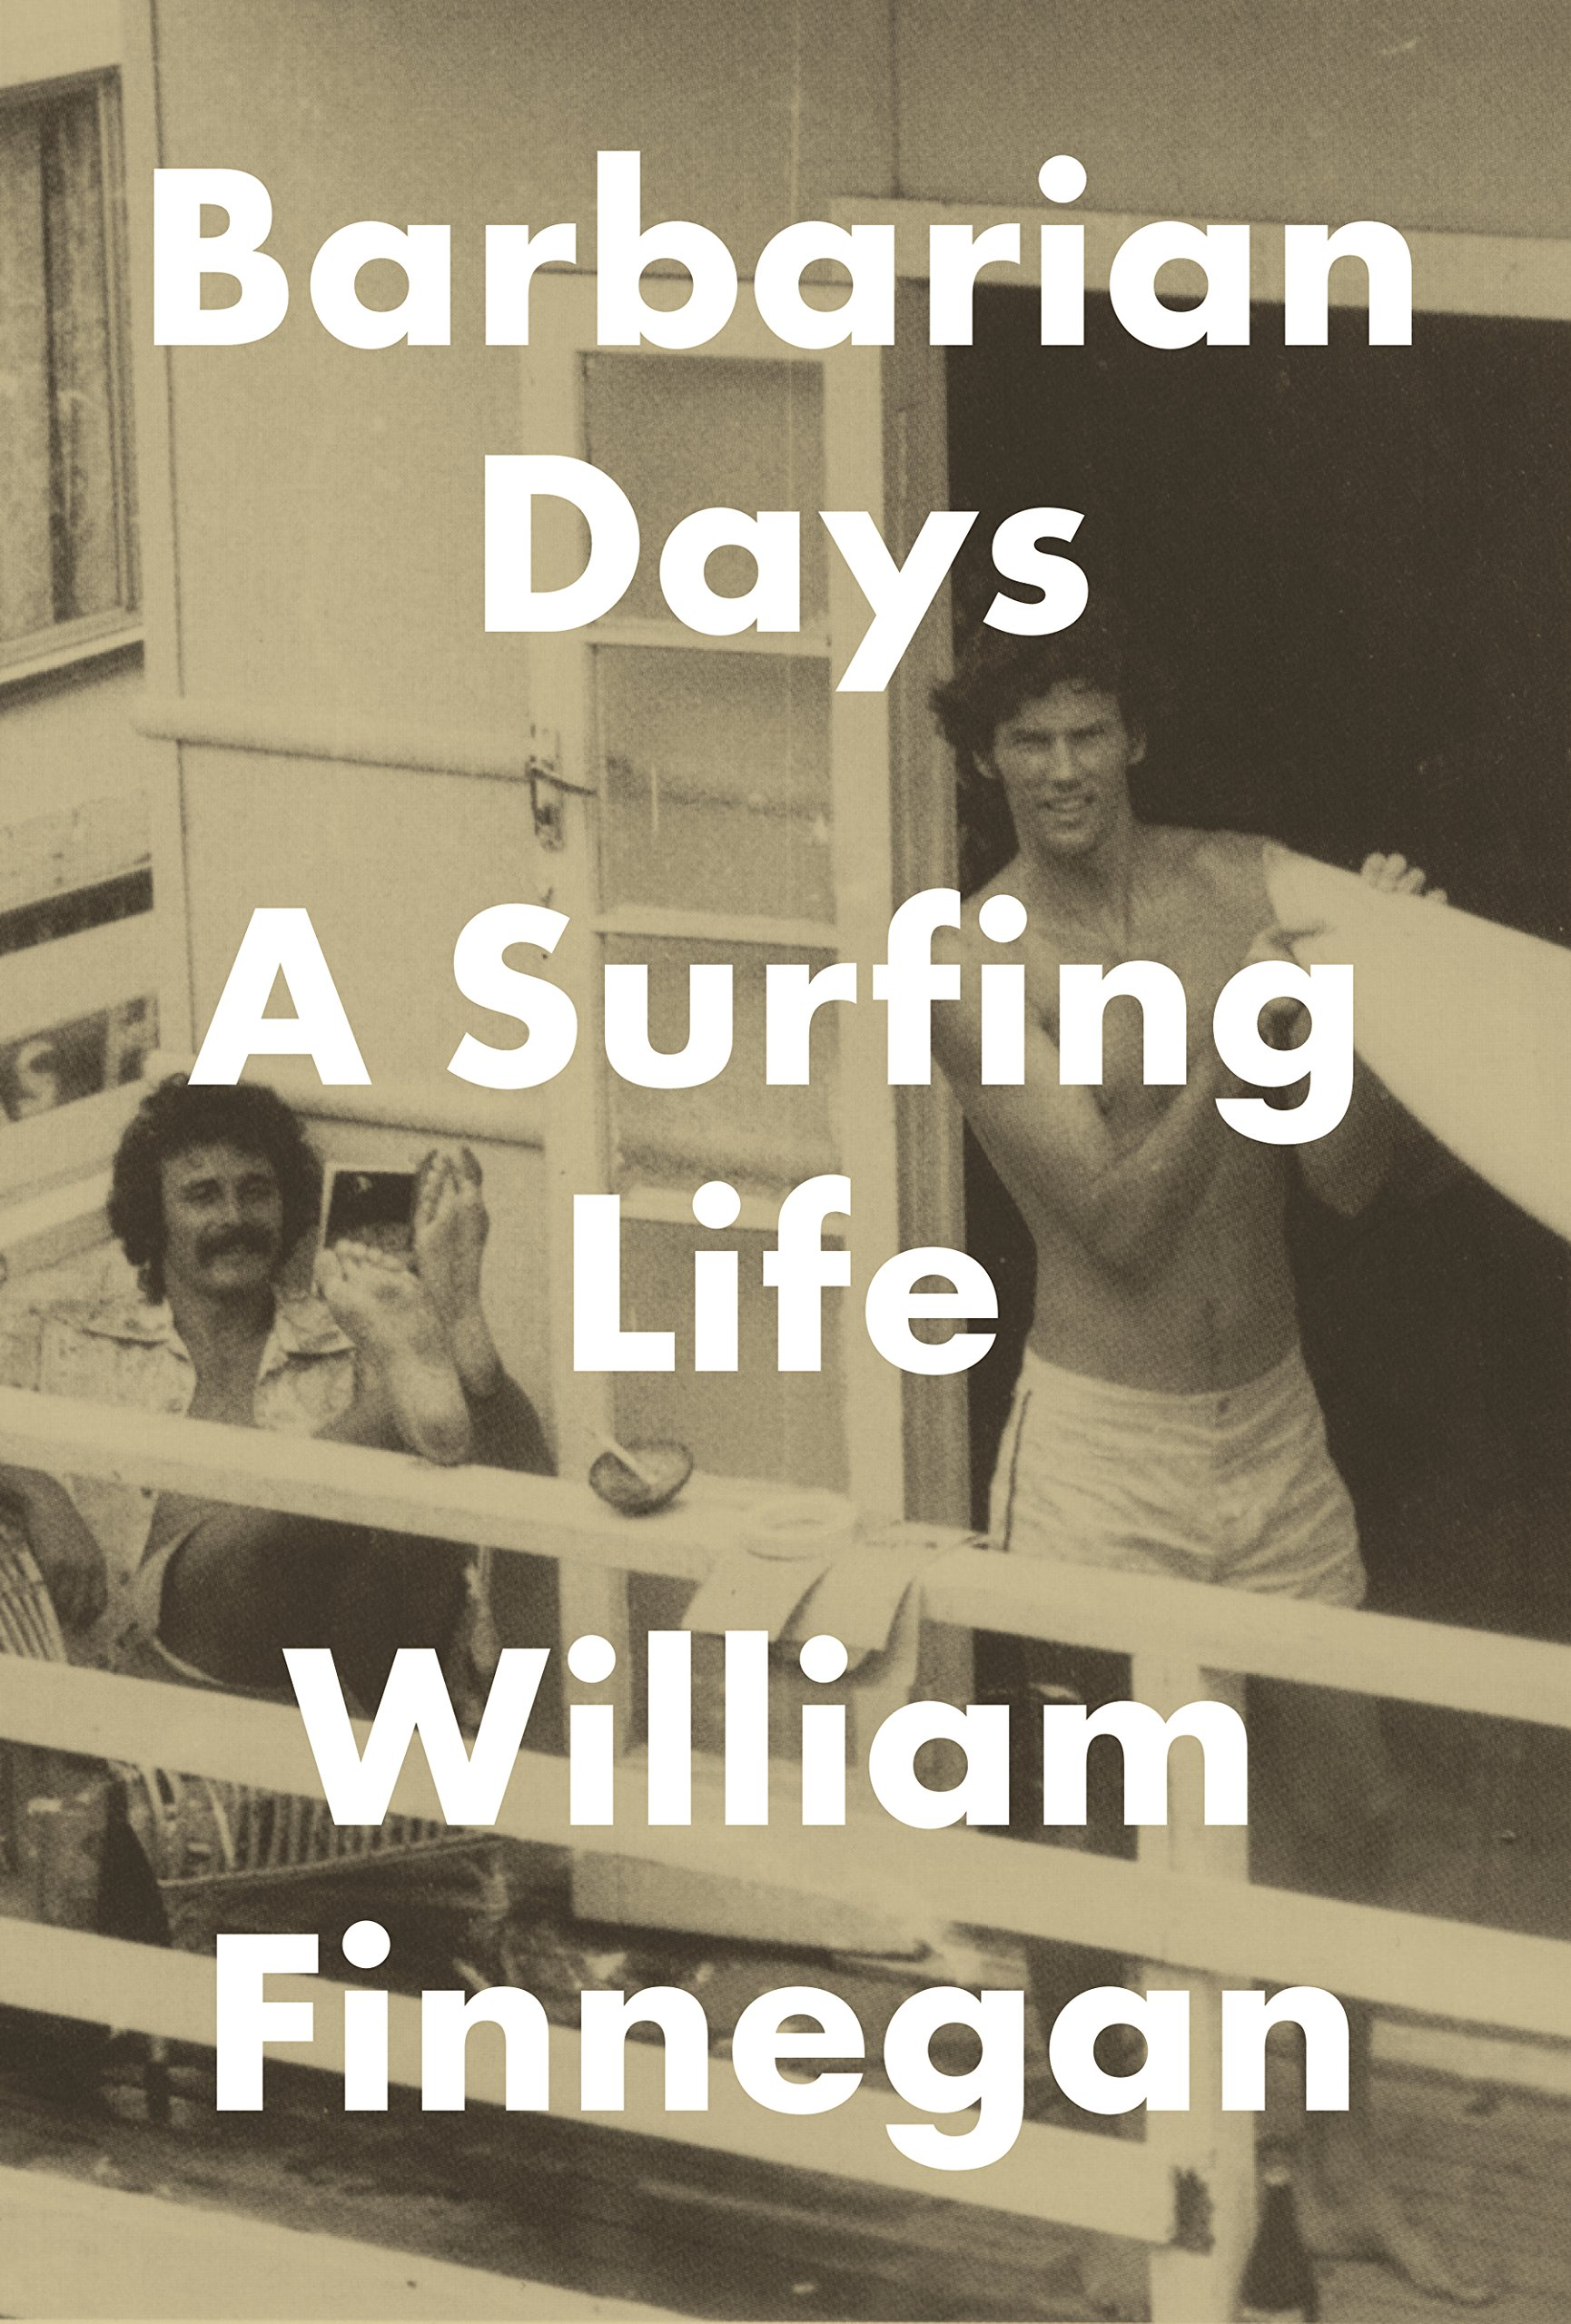 Barbarian Days: A Surfing Life ISBN-13 9781594203473